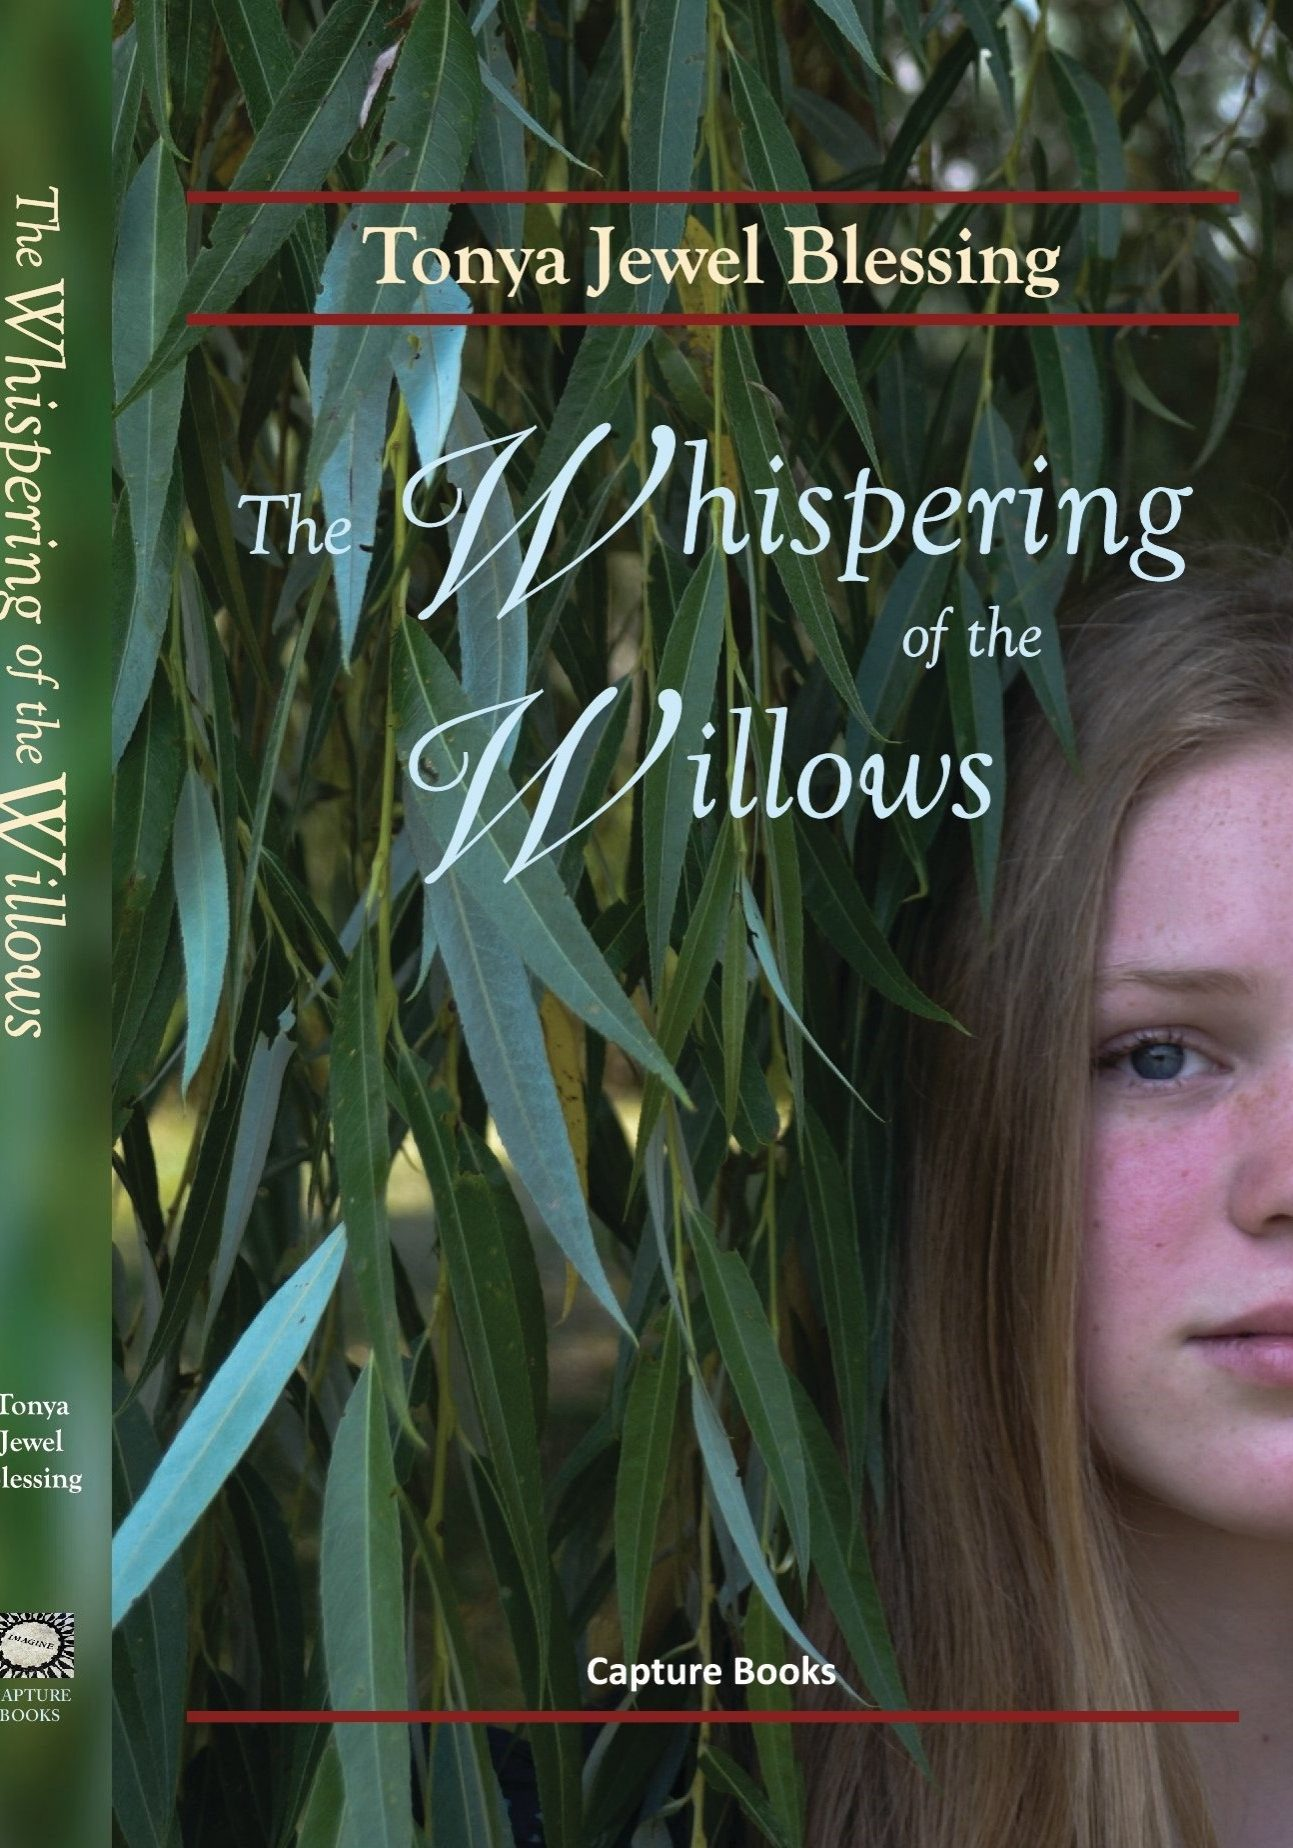 Whispering of the willows book trailer loewenherz creative